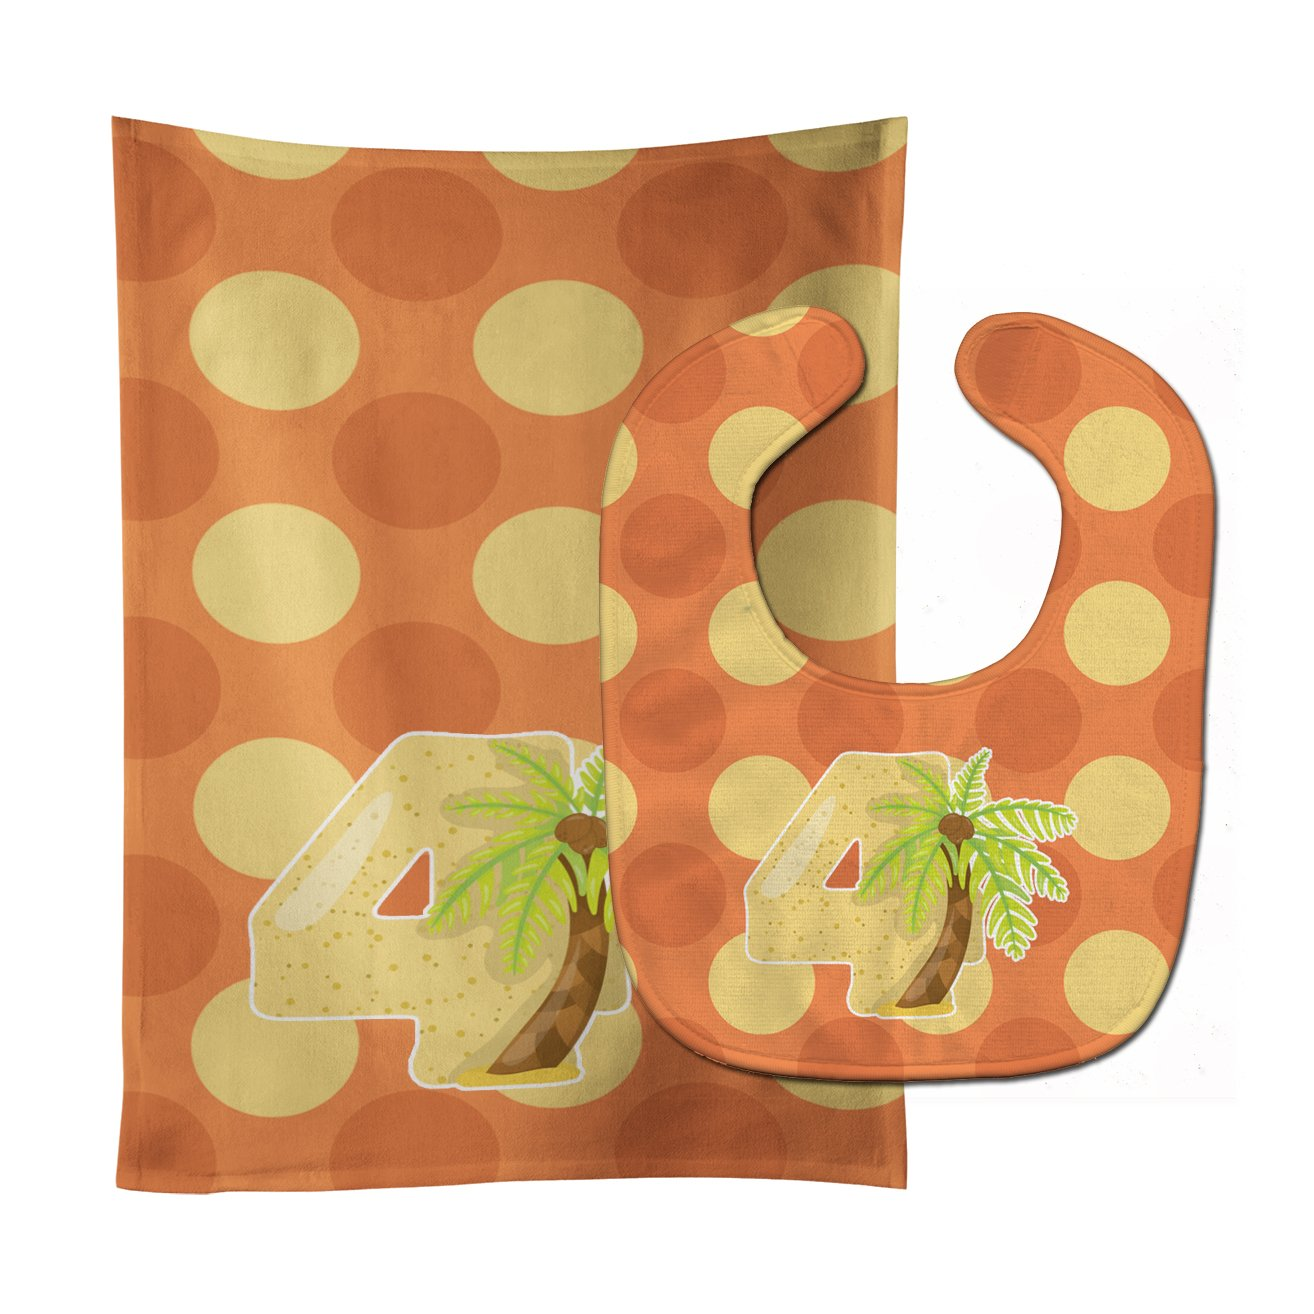 Zoo Month 4 Palm Tree Baby Bib & Burp Cloth BB9011STBU by Caroline's Treasures